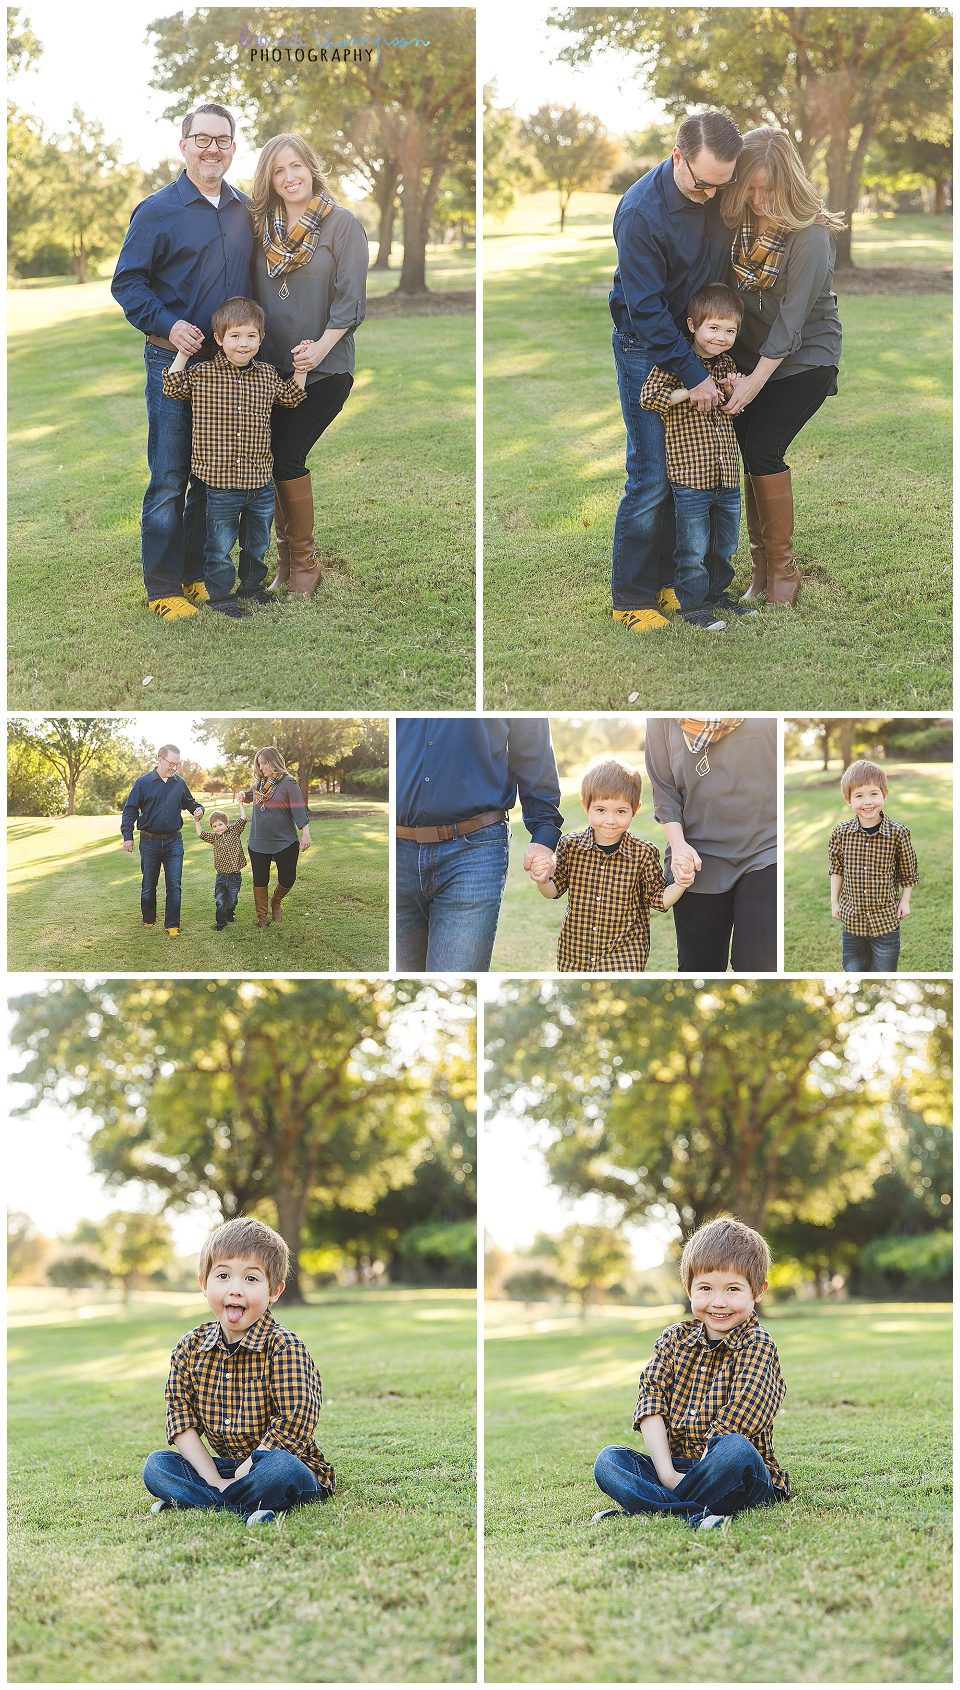 outdoor family session in natural area in Plano, tx with dad, mom and  young son